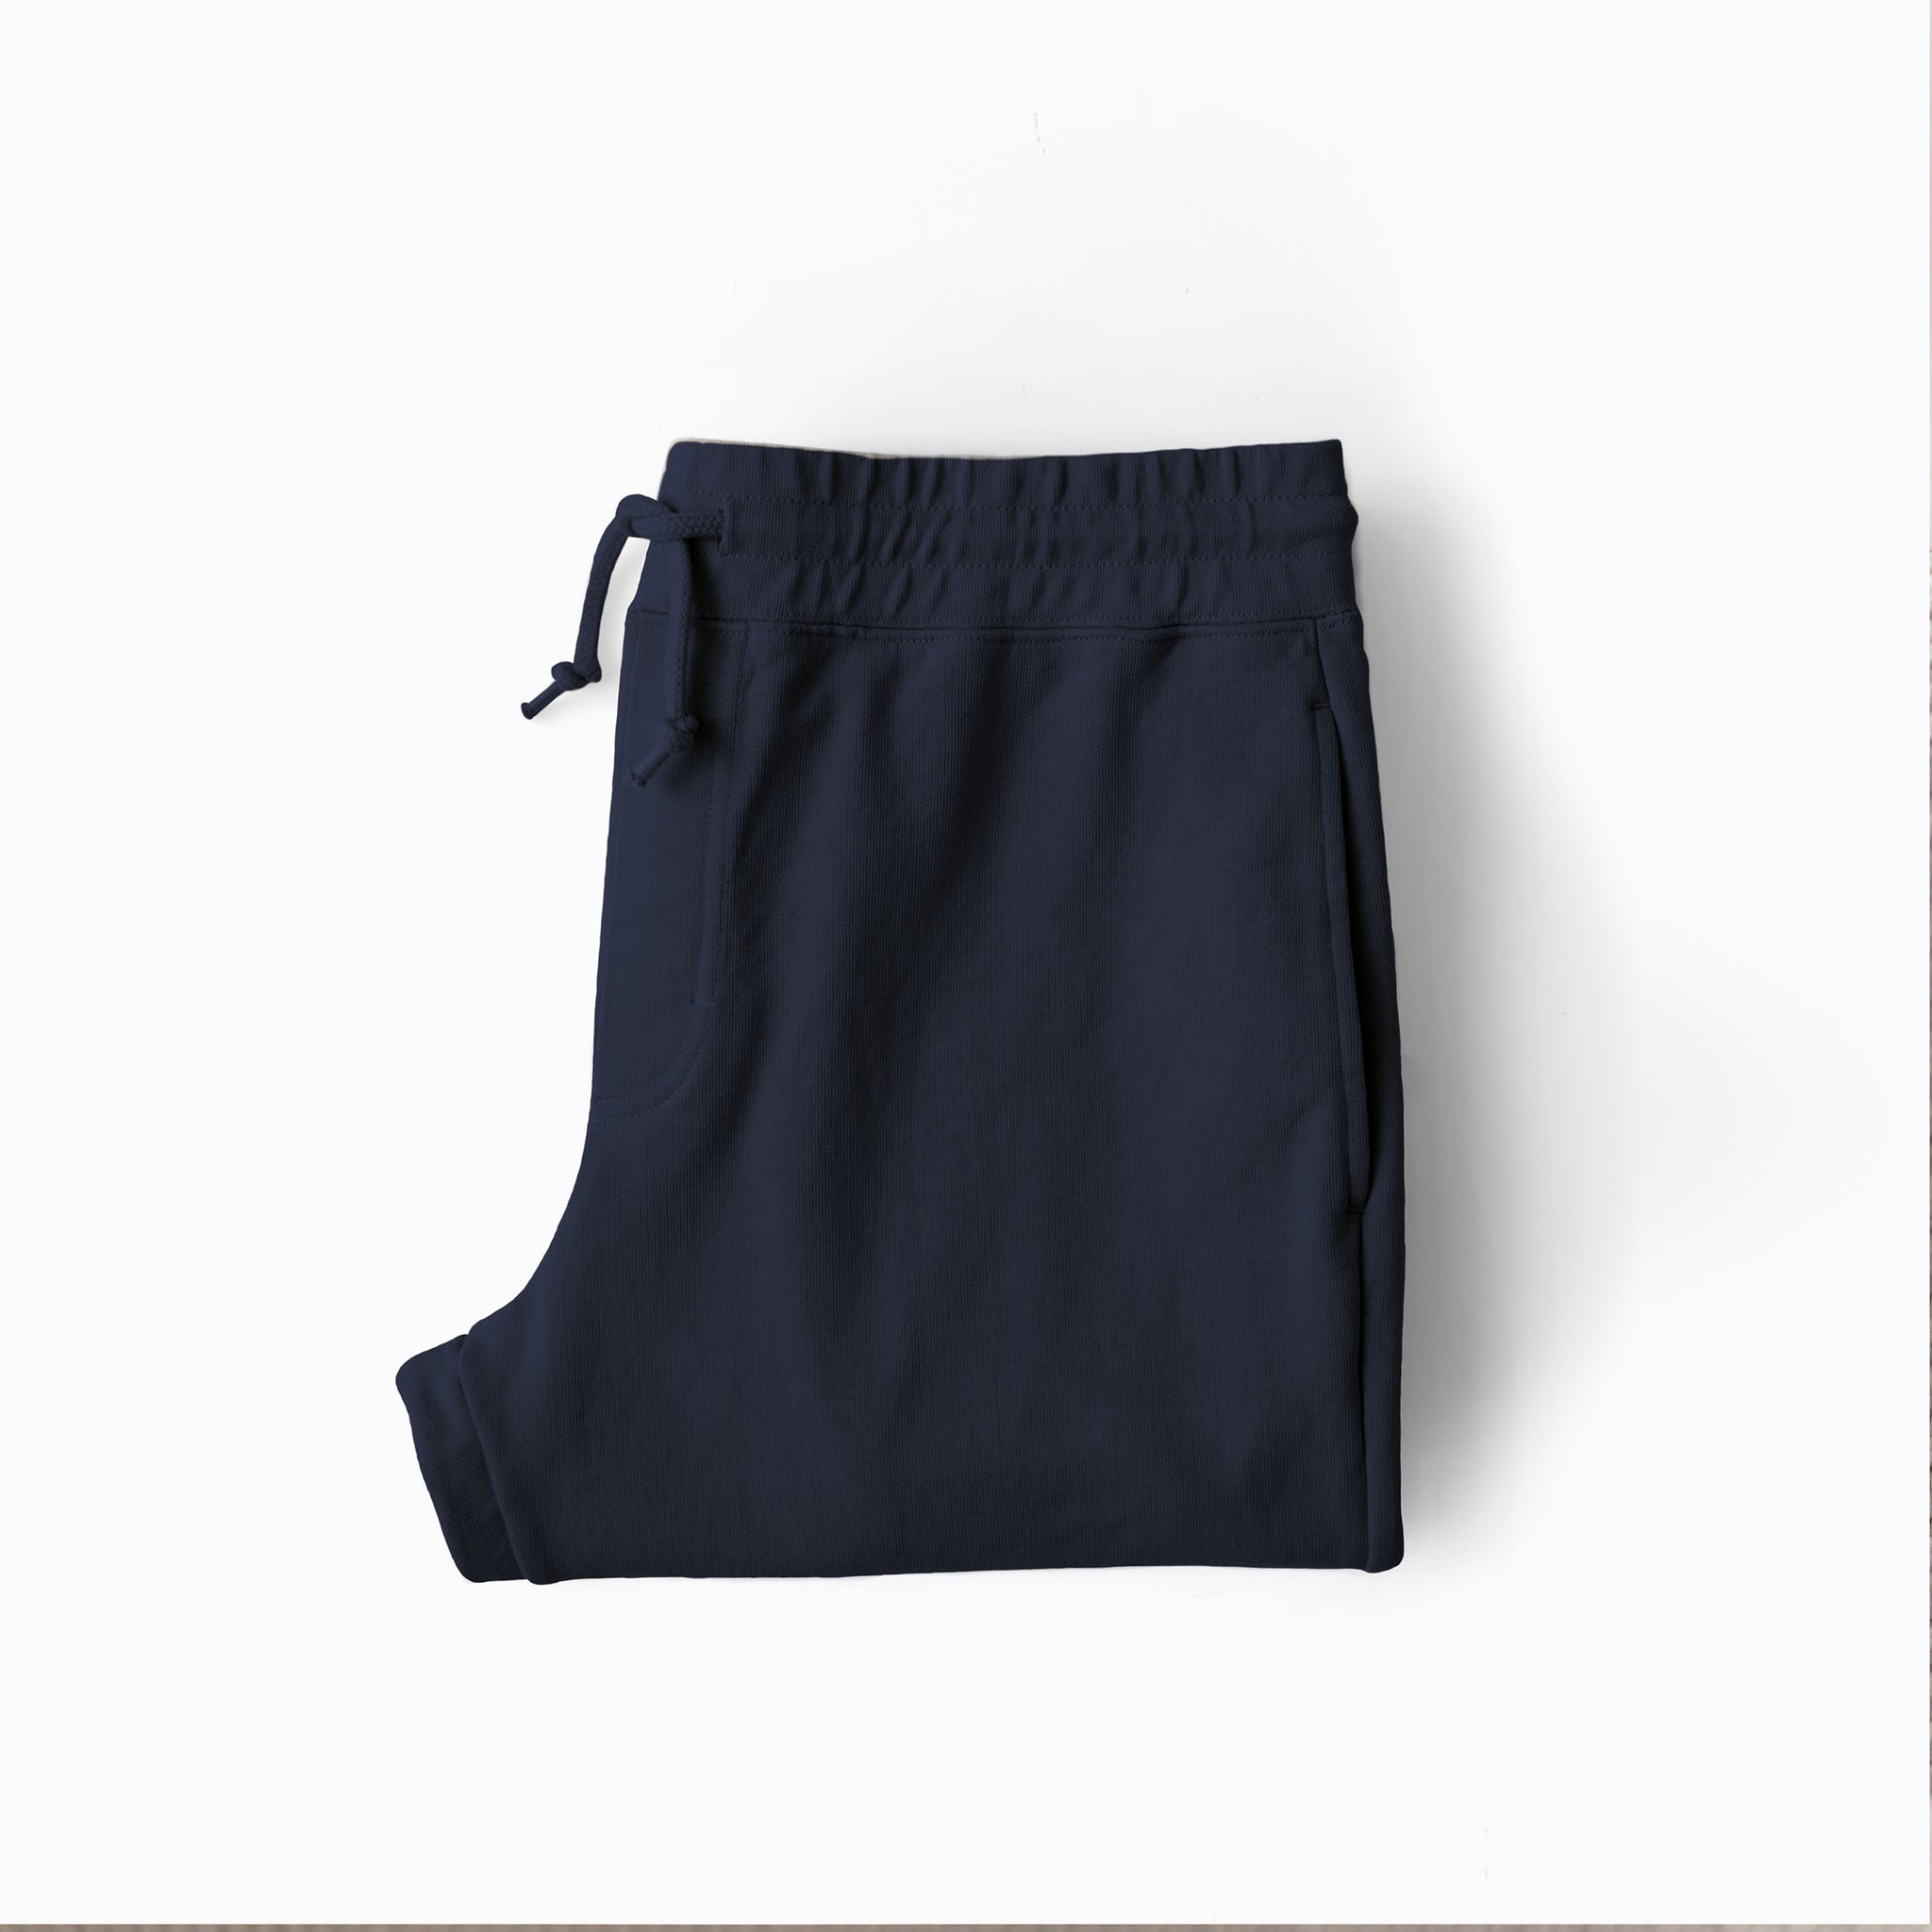 Sweatpant in Navy made from organic cotton